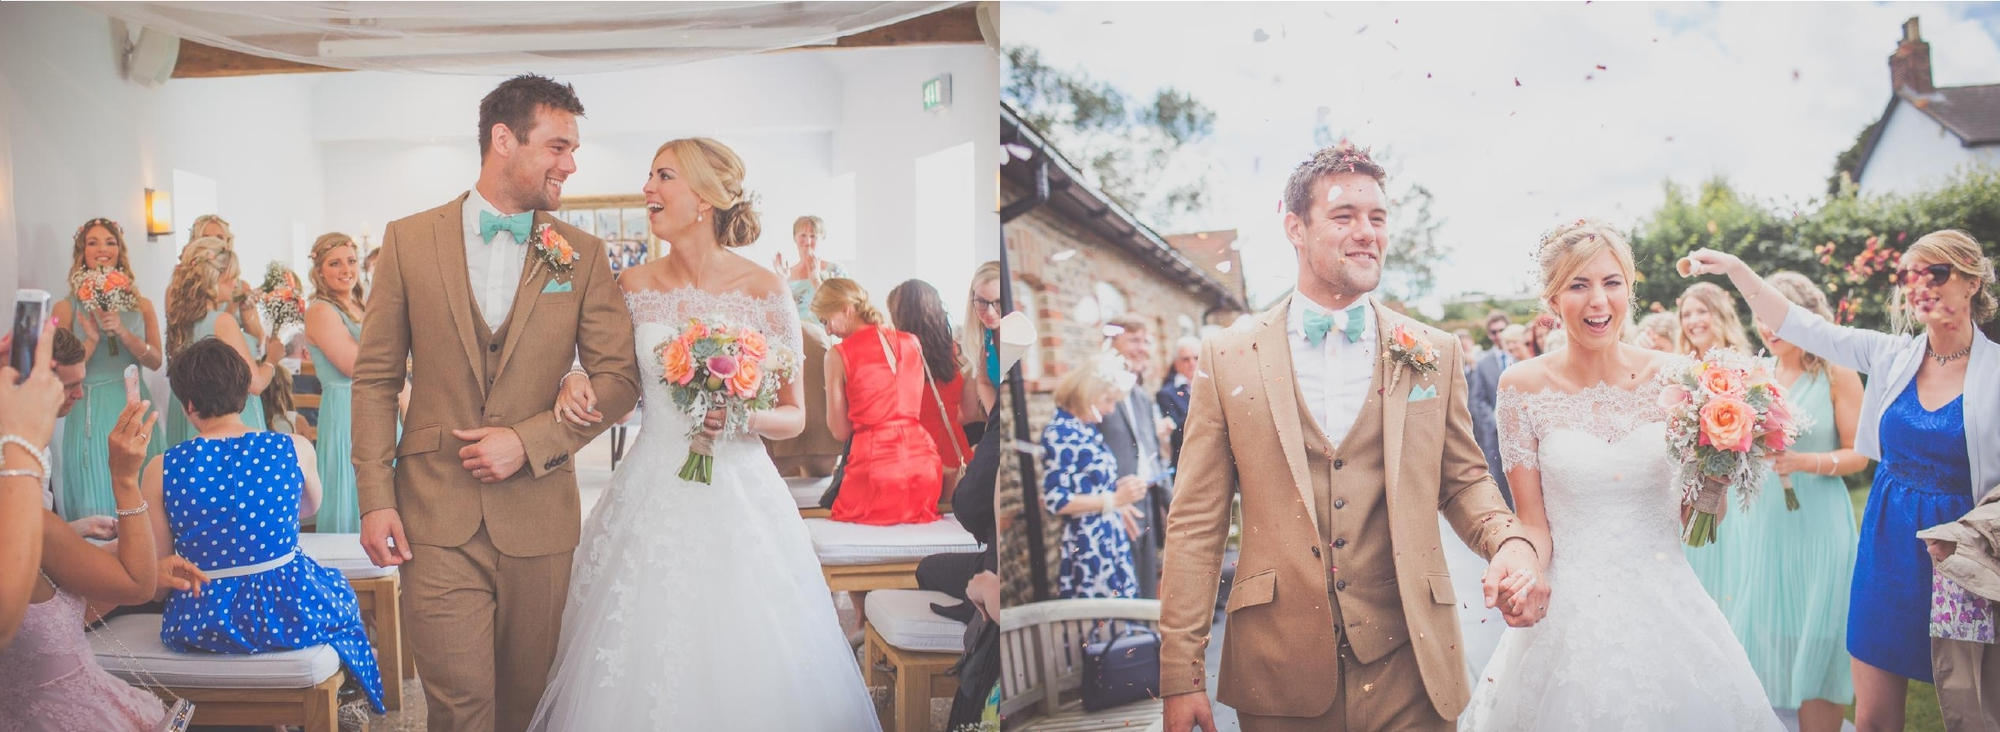 Southend Barns Wedding Photographers Justine Claire Chichester 11 .jpg